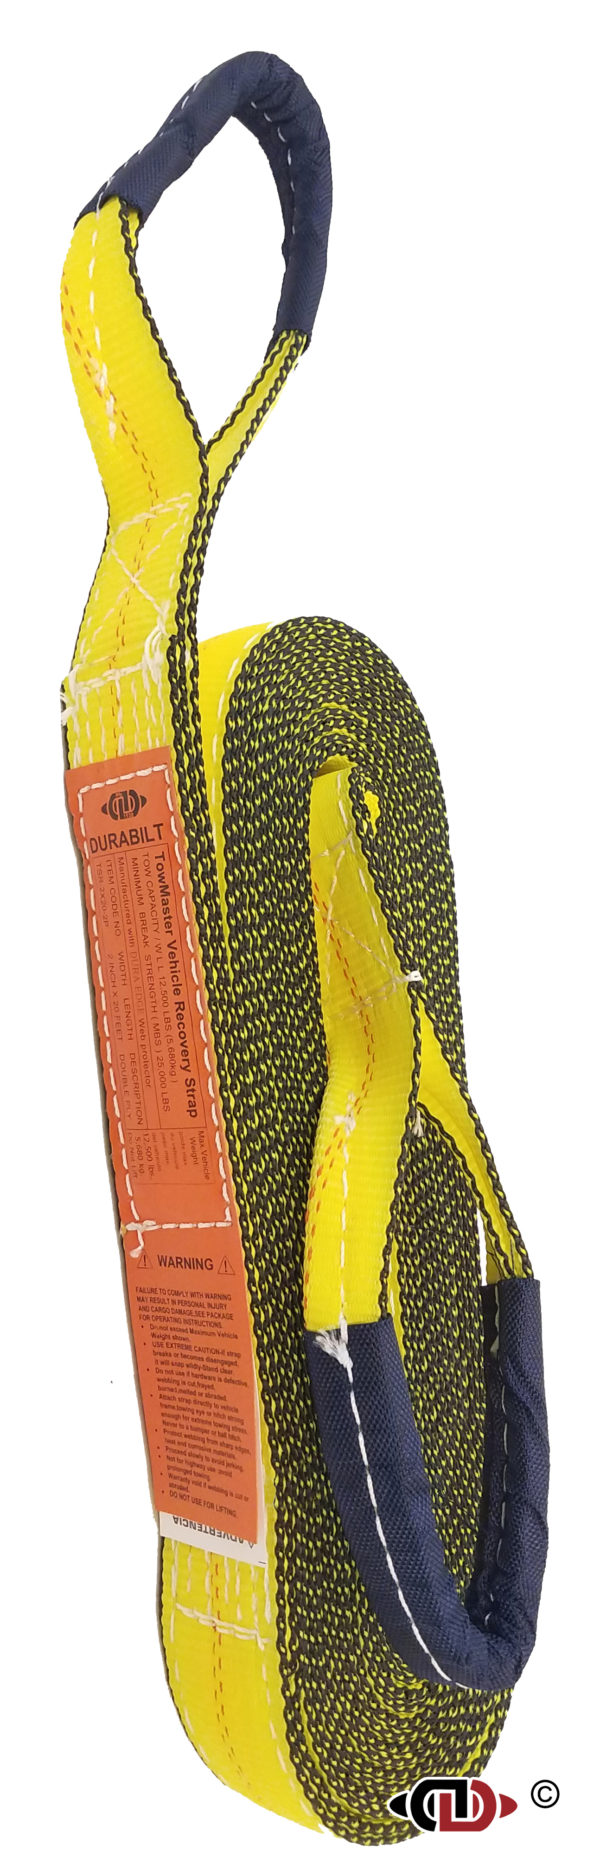 """2 Ply - 2"""" x 30' Vehicle Recovery Tow Strap TSR-2x30-2P"""